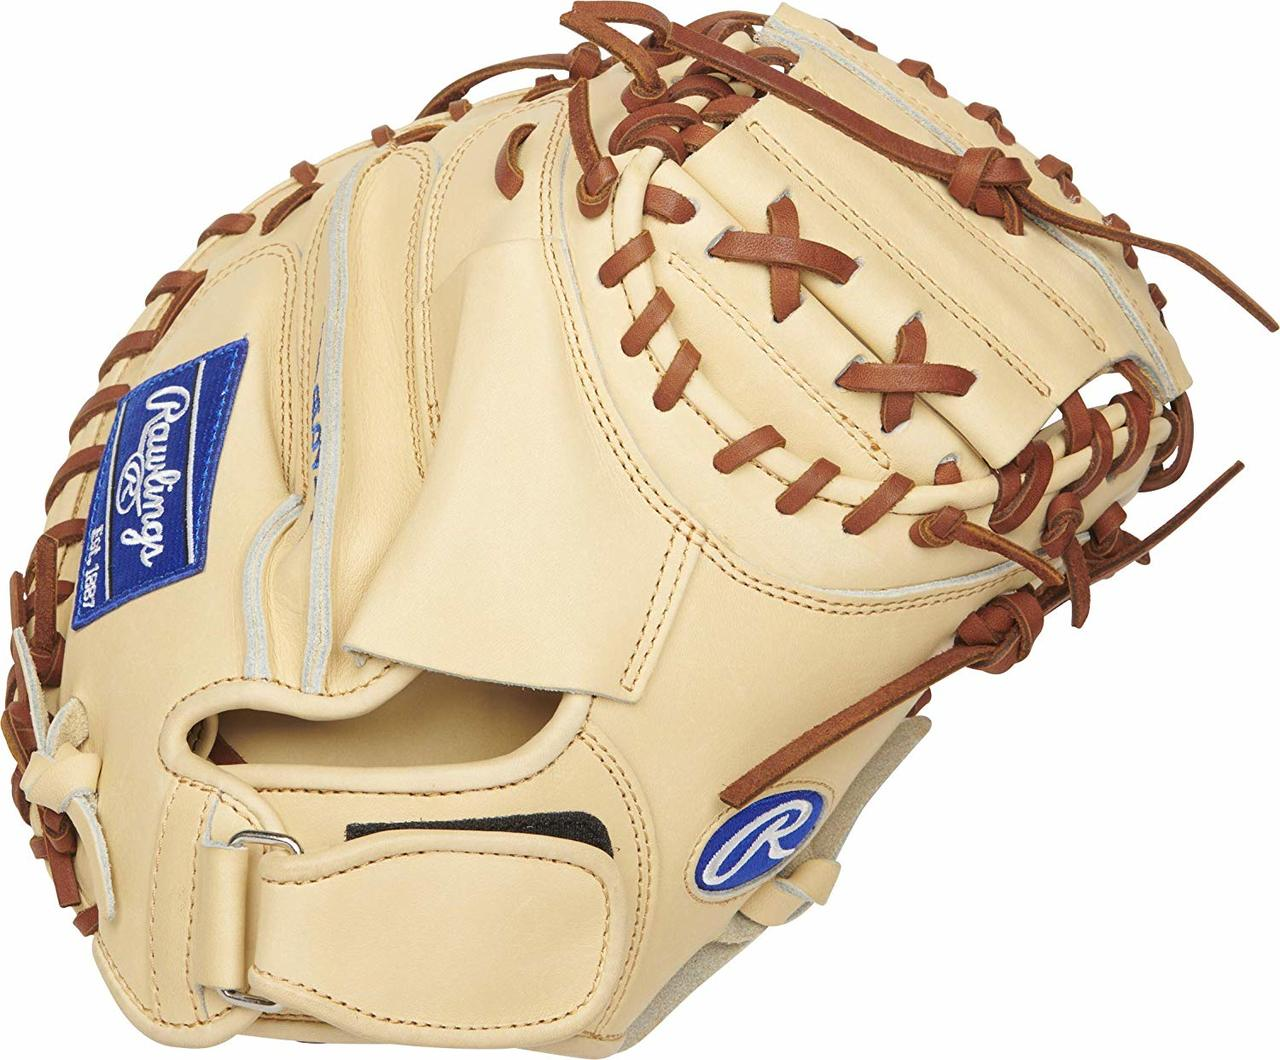 rawlings-heart-of-the-hide-salvador-perez-catchers-mitt-32-5-right-hand-throw PROSP13C-RightHandThrow  083321598883 Crafted from world-renowned Heart of the Hide ultra-premium steer-hide leather this